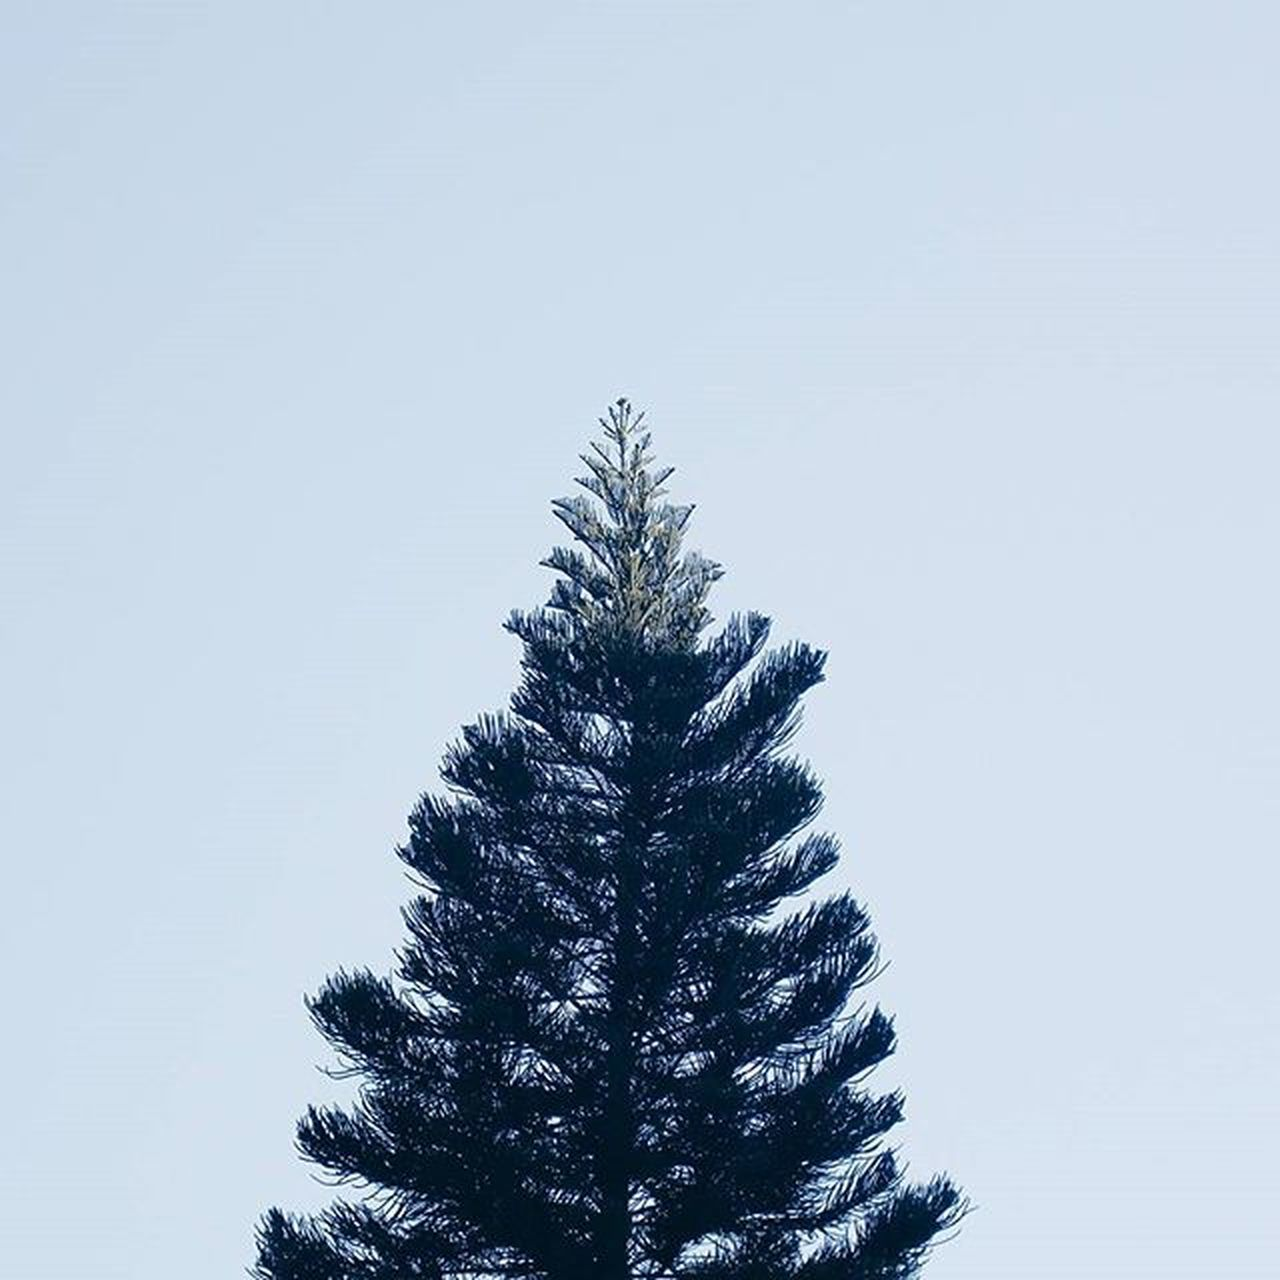 tree, silhouette, blue, low angle view, pine tree, nature, no people, clear sky, beauty in nature, growth, day, outdoors, sky, spruce tree